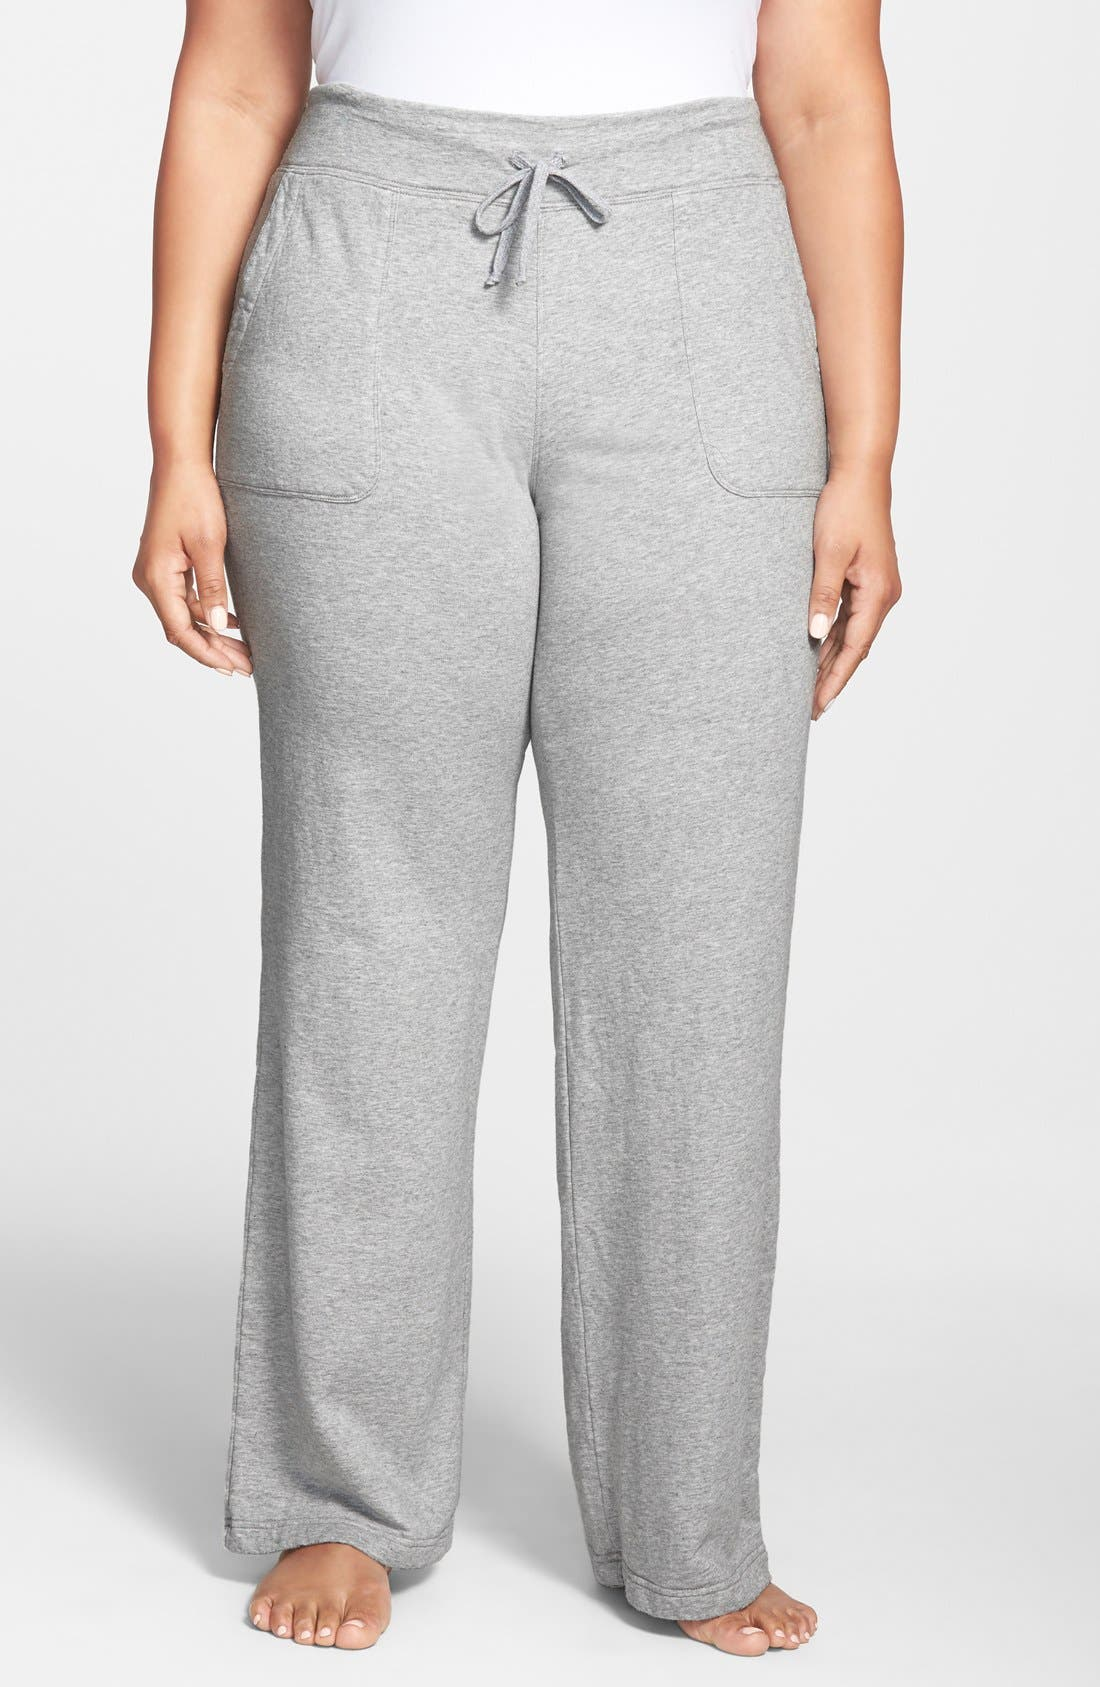 Alternate Image 1 Selected - Hard Tail Slouchy Knit Cargo Pants (Plus Size)